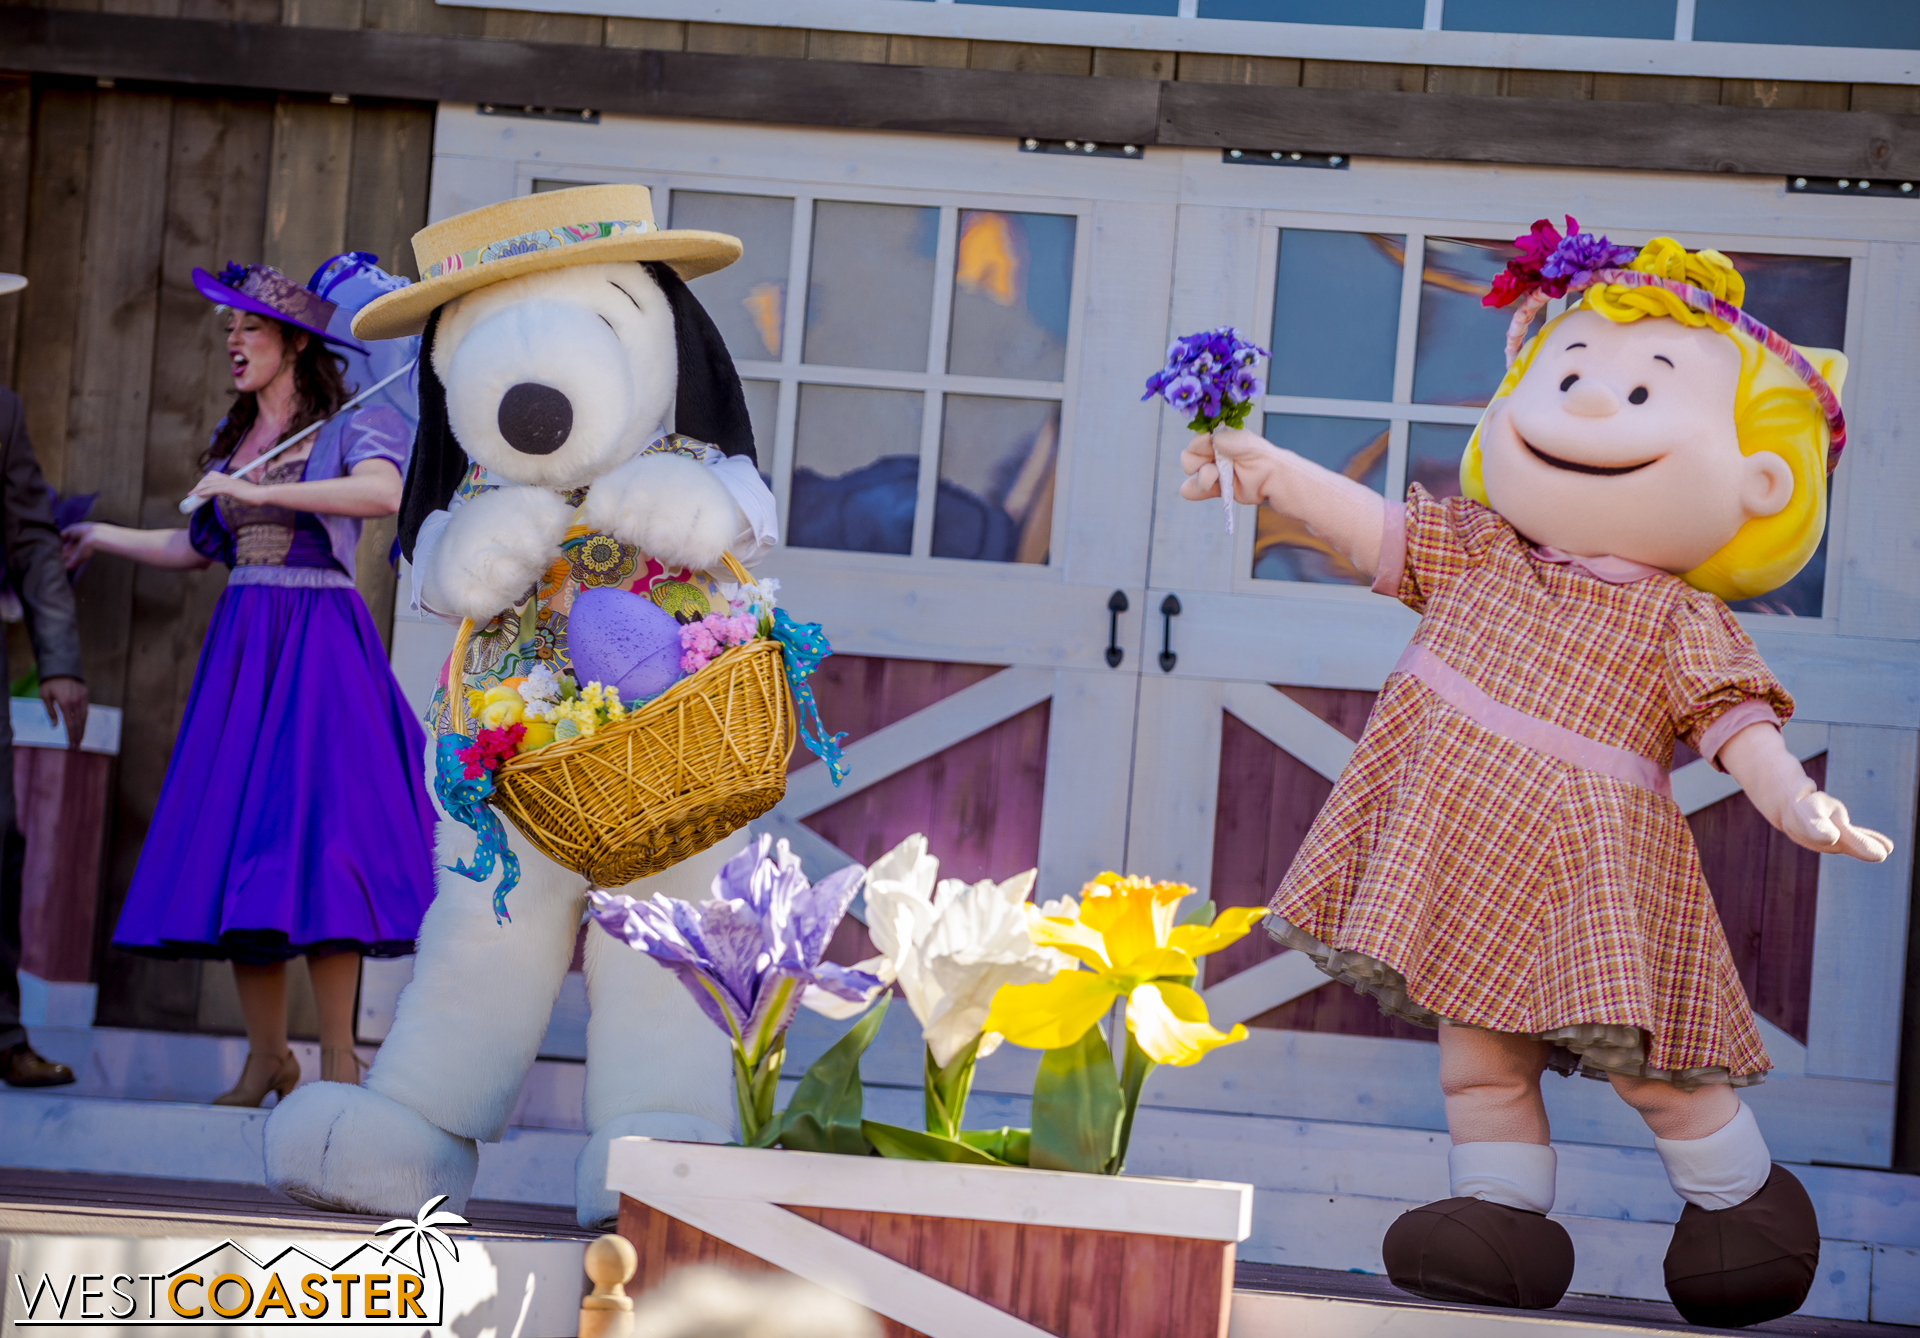 Snoopy plays nice and gives Sally a bouquet.